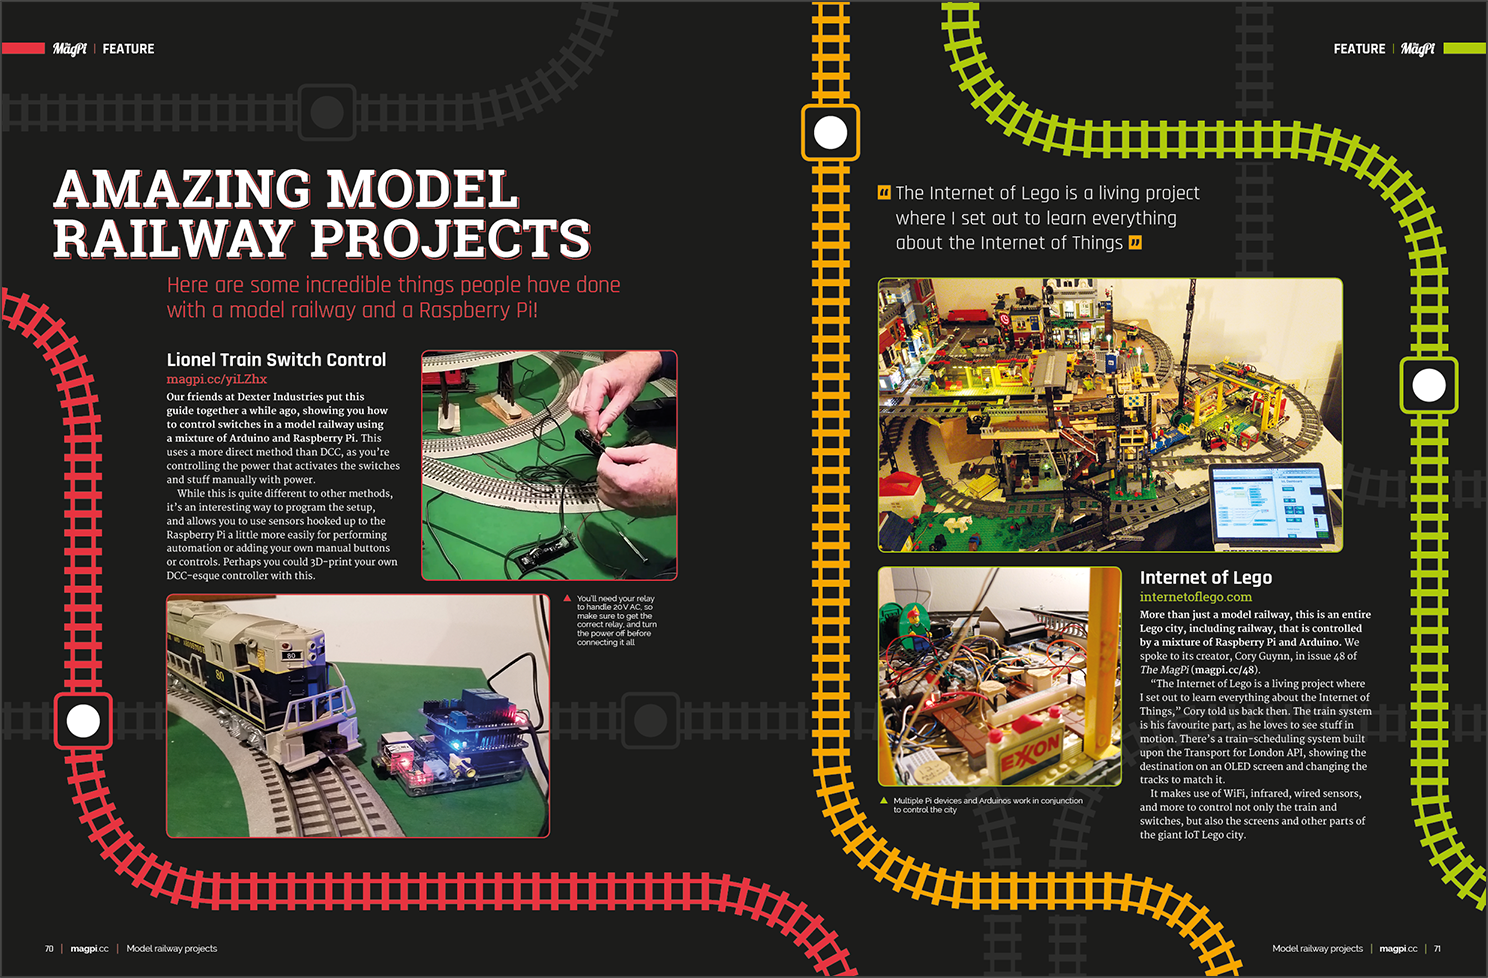 Amazing model railway projects in The MagPi 82